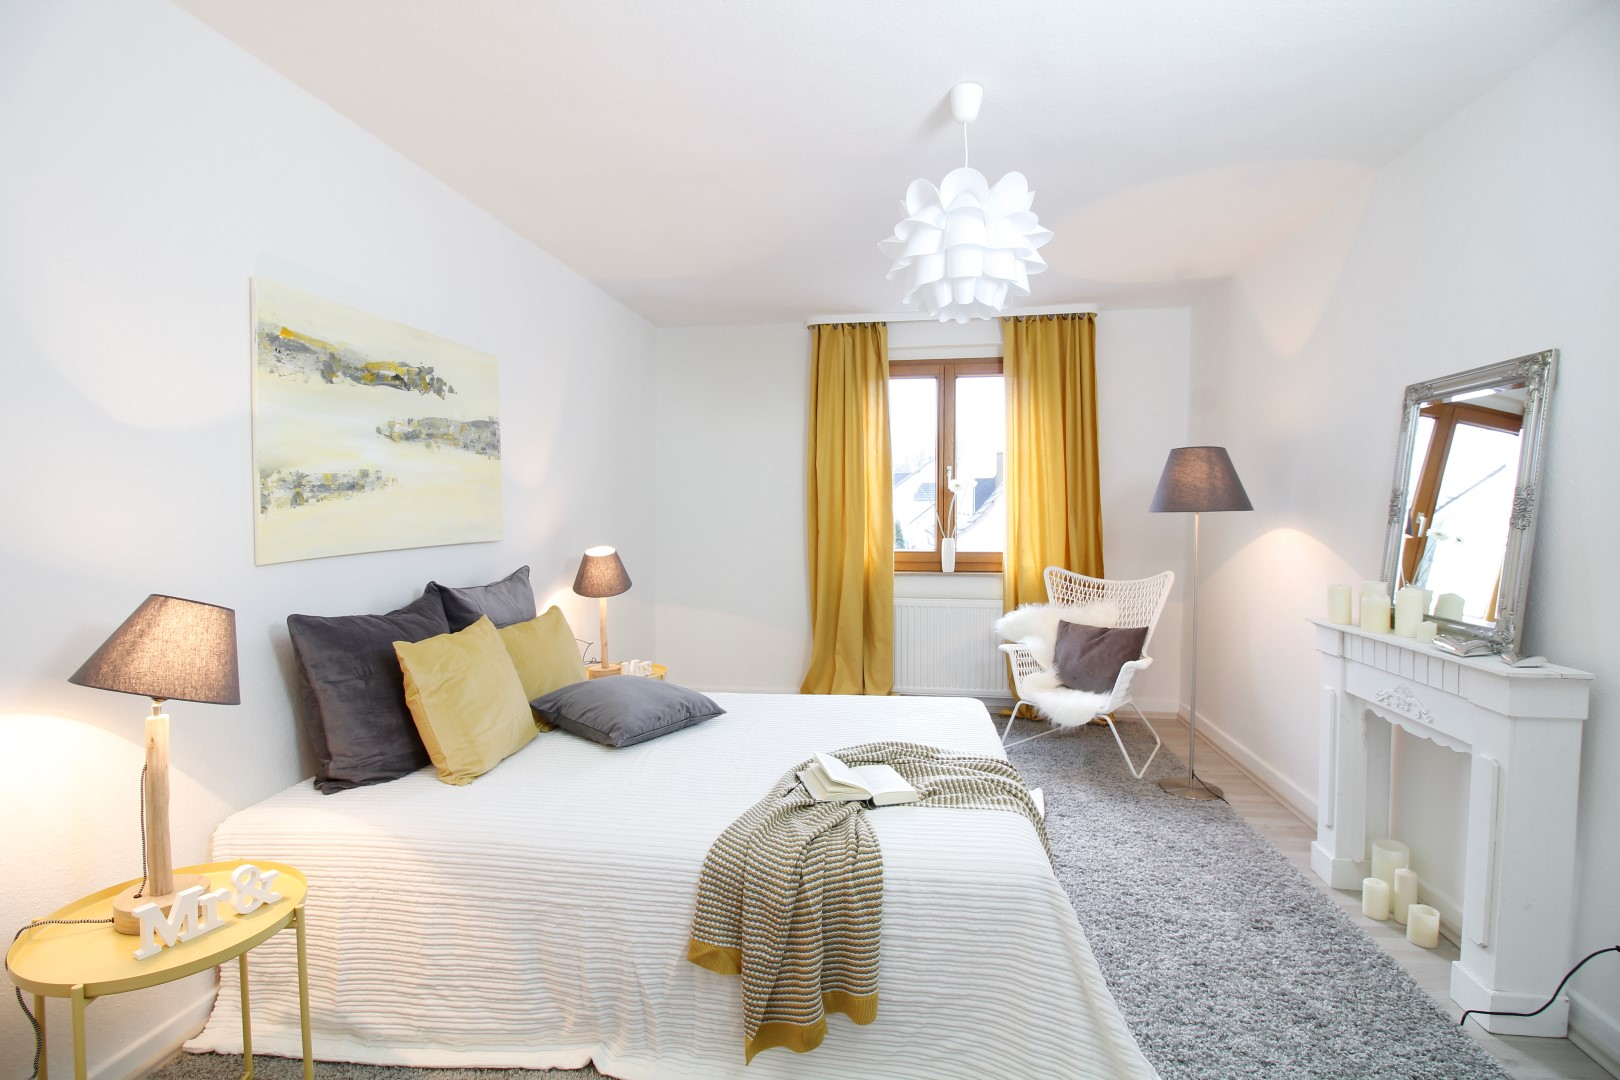 Home Staging in Lohmar